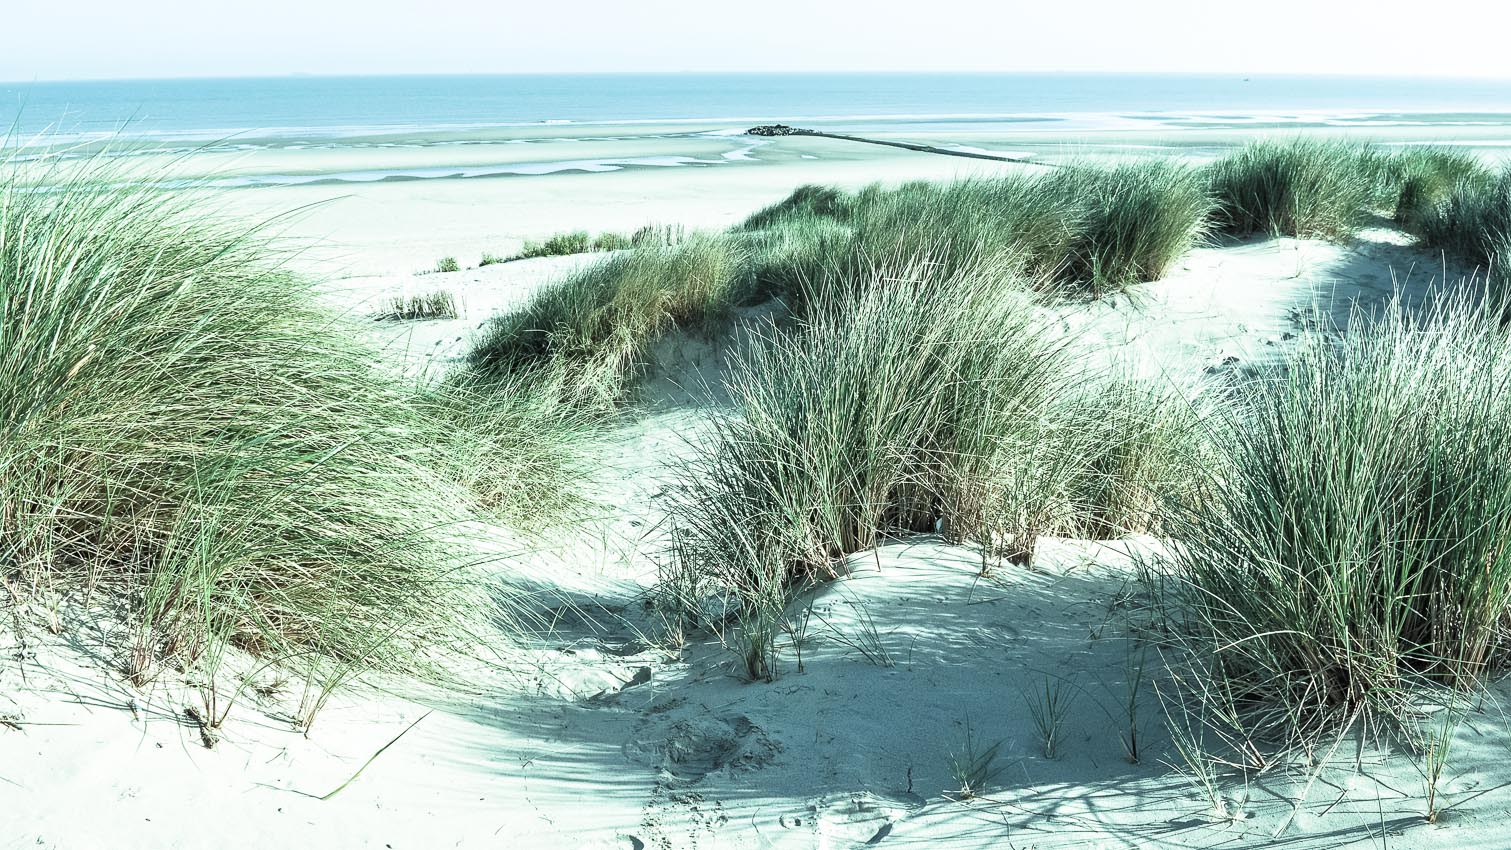 19-mer-plage-dune-location-decors-film-cinema-photo-belgium-bruxelles